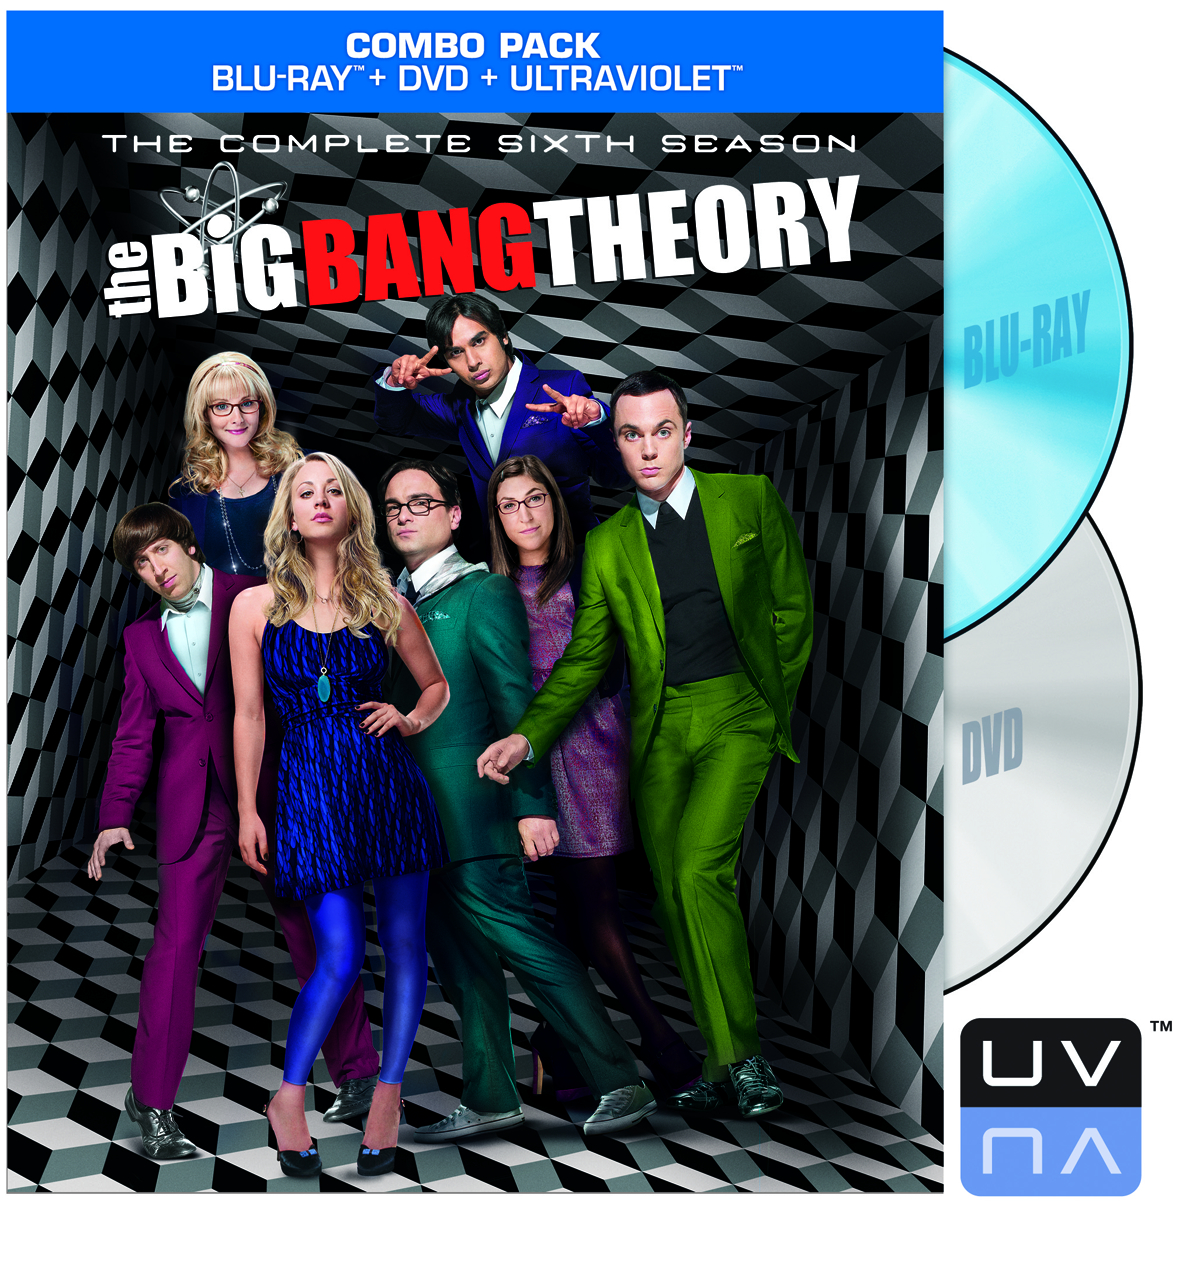 BIG BANG THEORY BD + DVD SEA 06